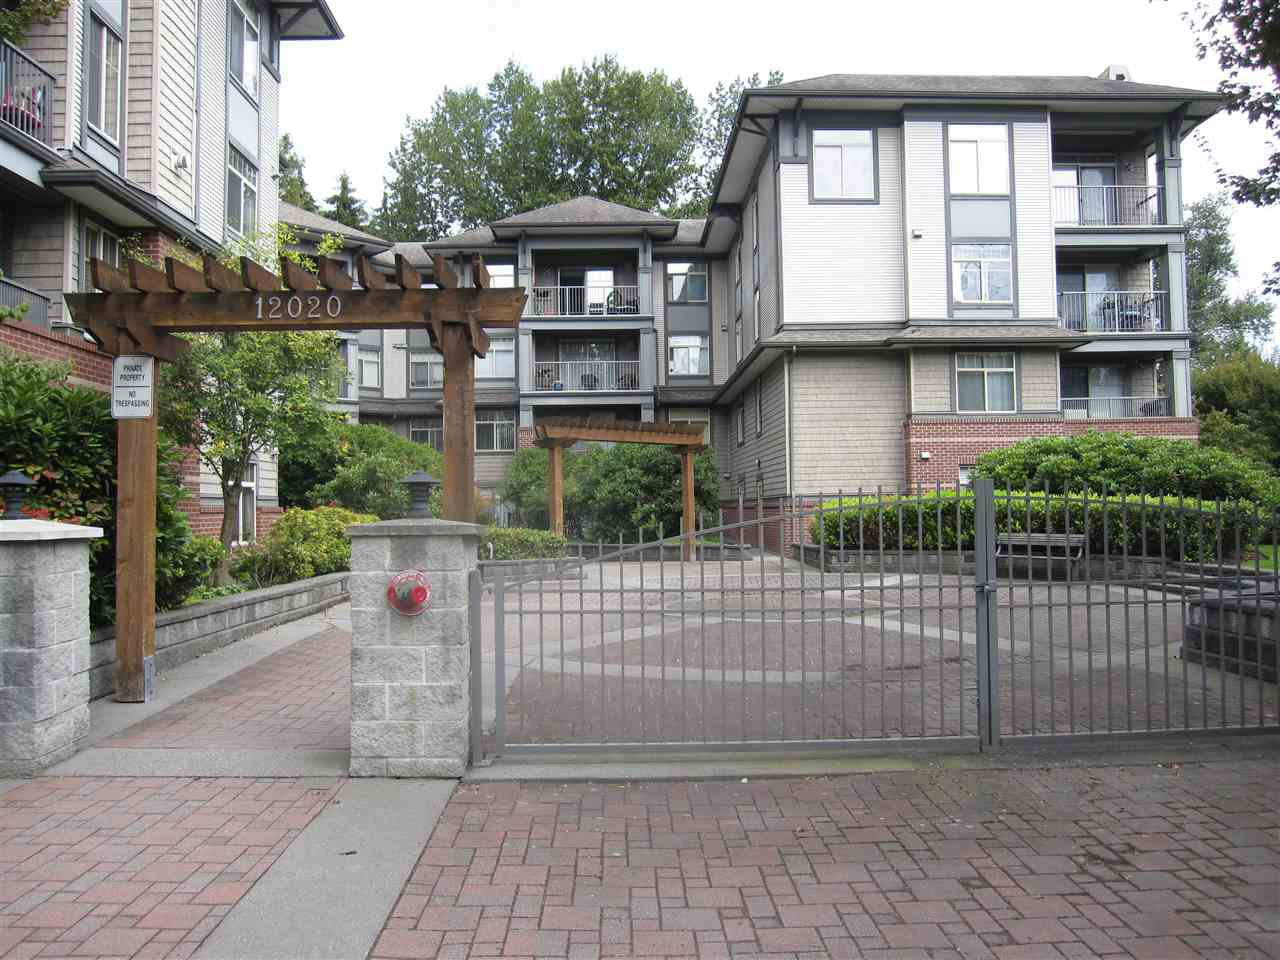 Main Photo: 306 12020 207A Street in Maple Ridge: Northwest Maple Ridge Condo for sale : MLS®# R2518444